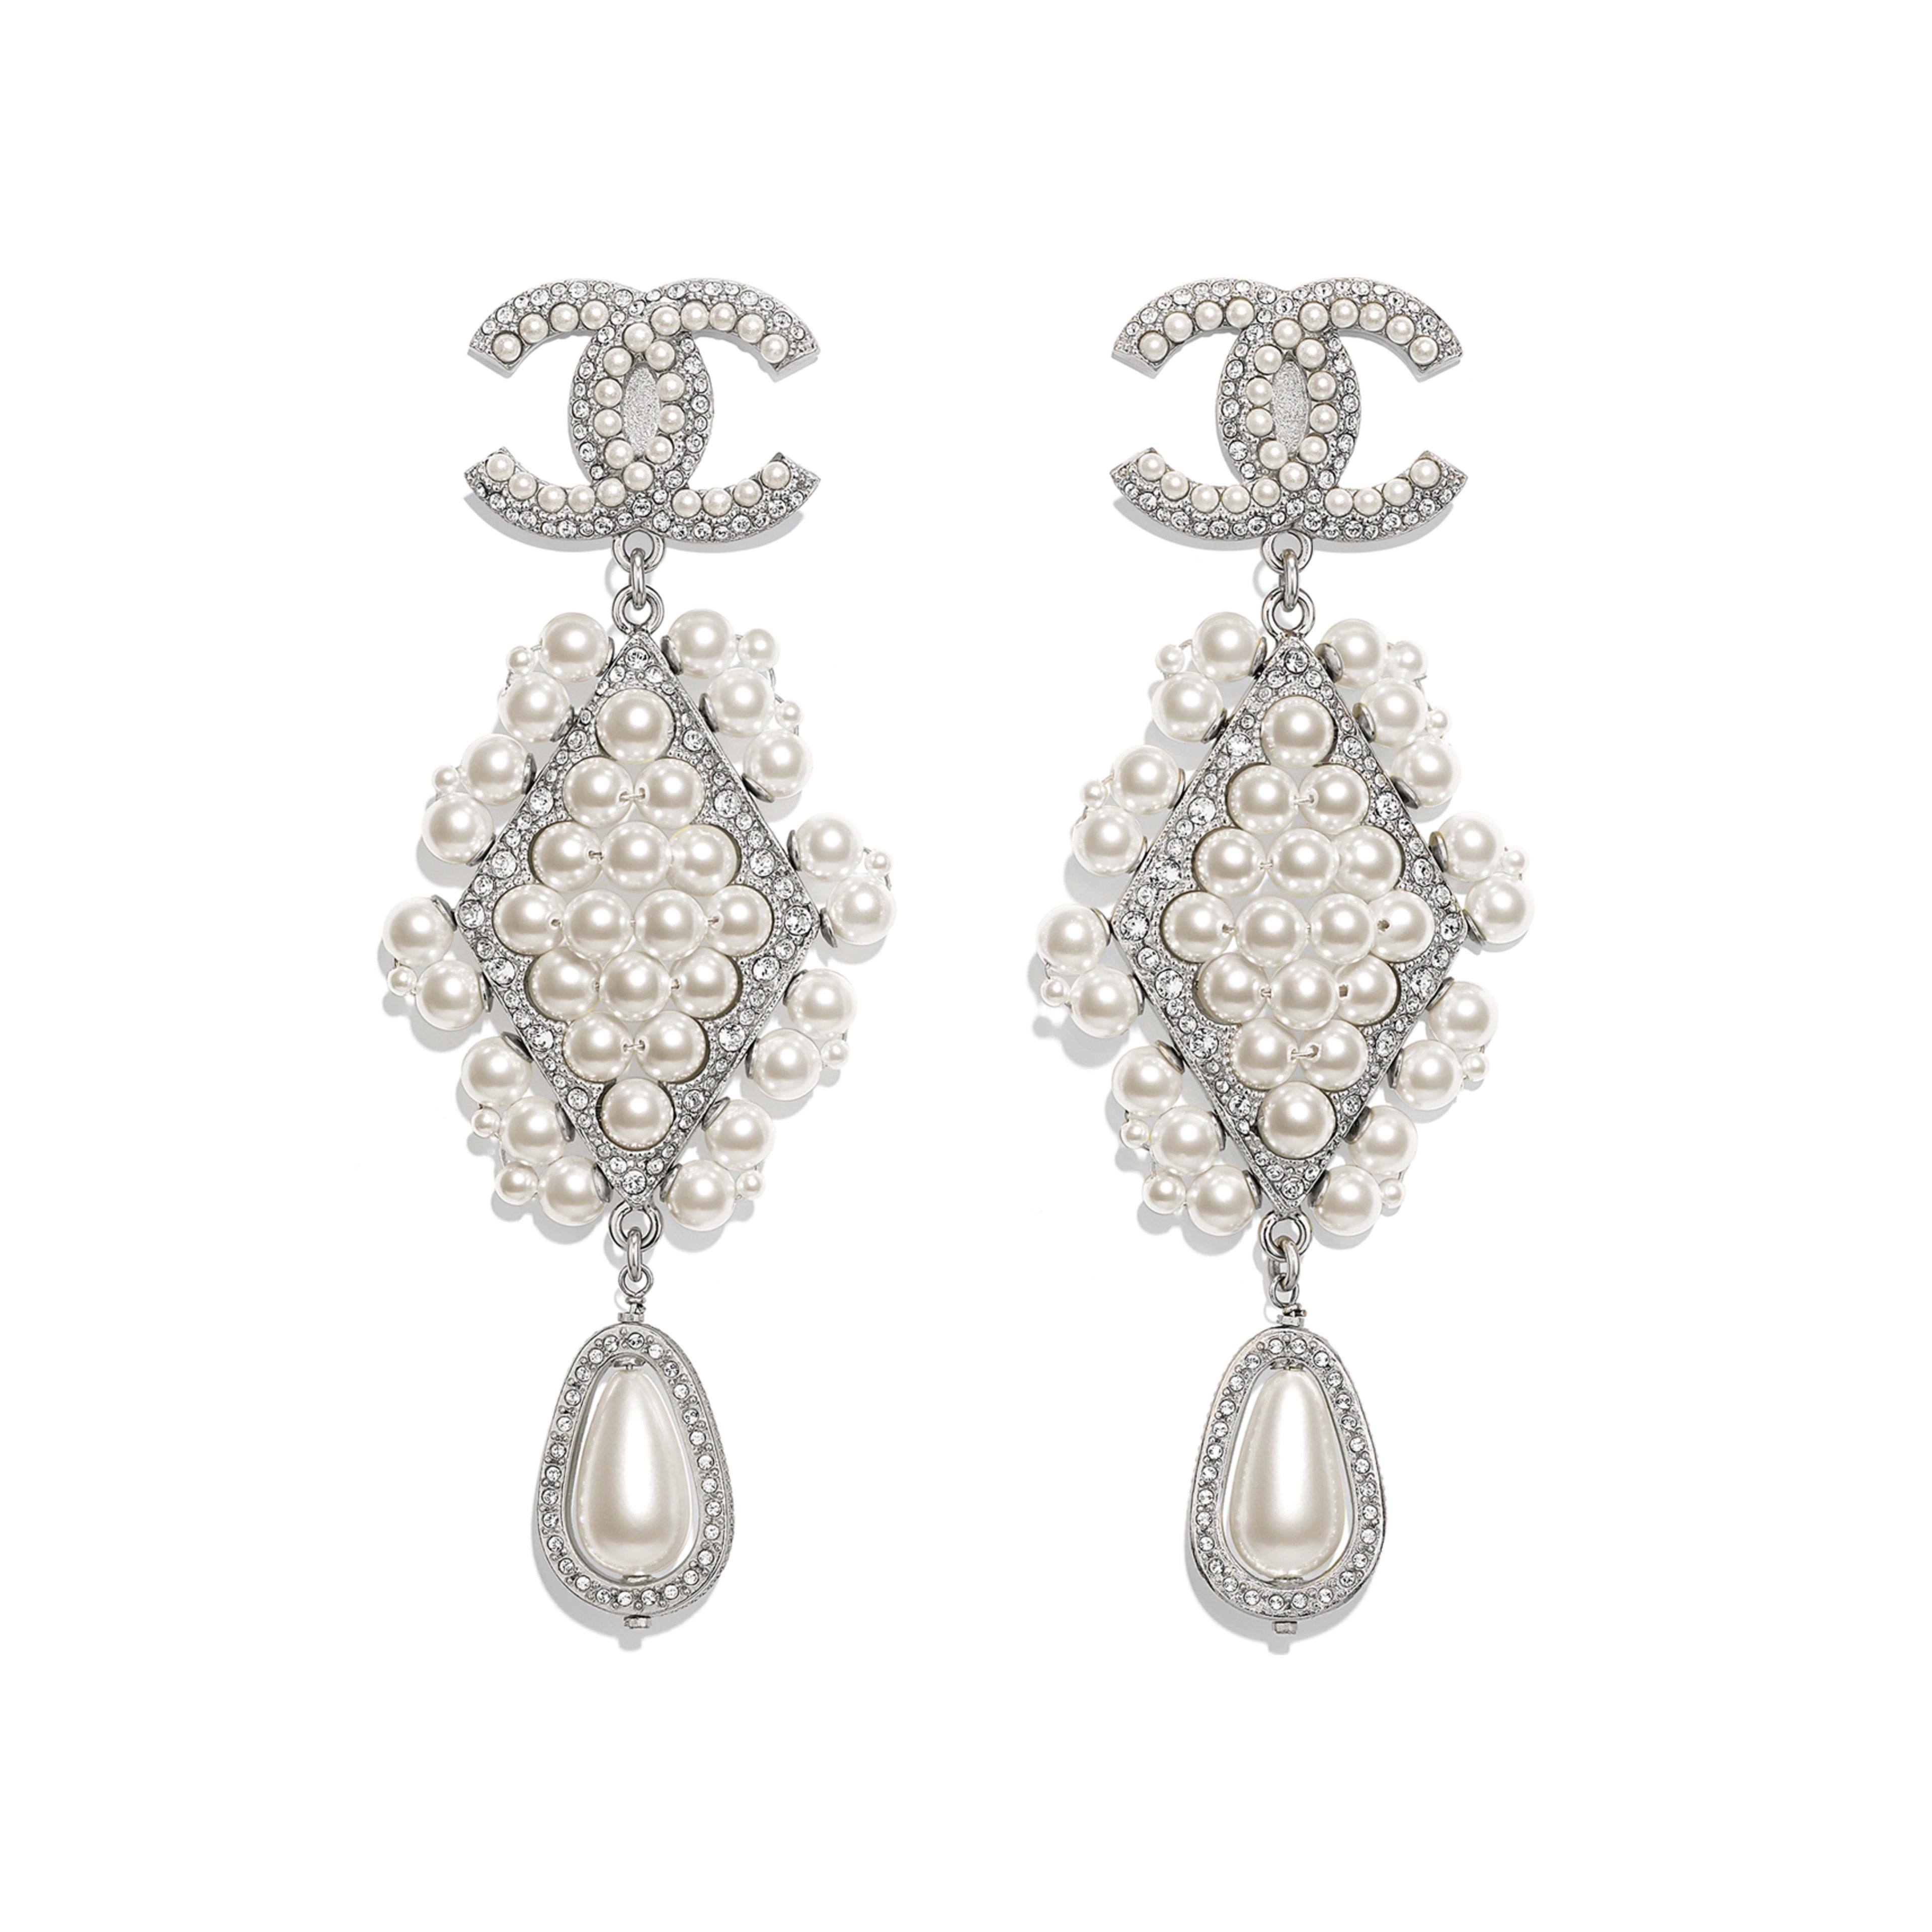 Clip-on Earrings - Silver, Pearly White & Crystal - Metal, Glass Pearls & Strass - Default view - see full sized version